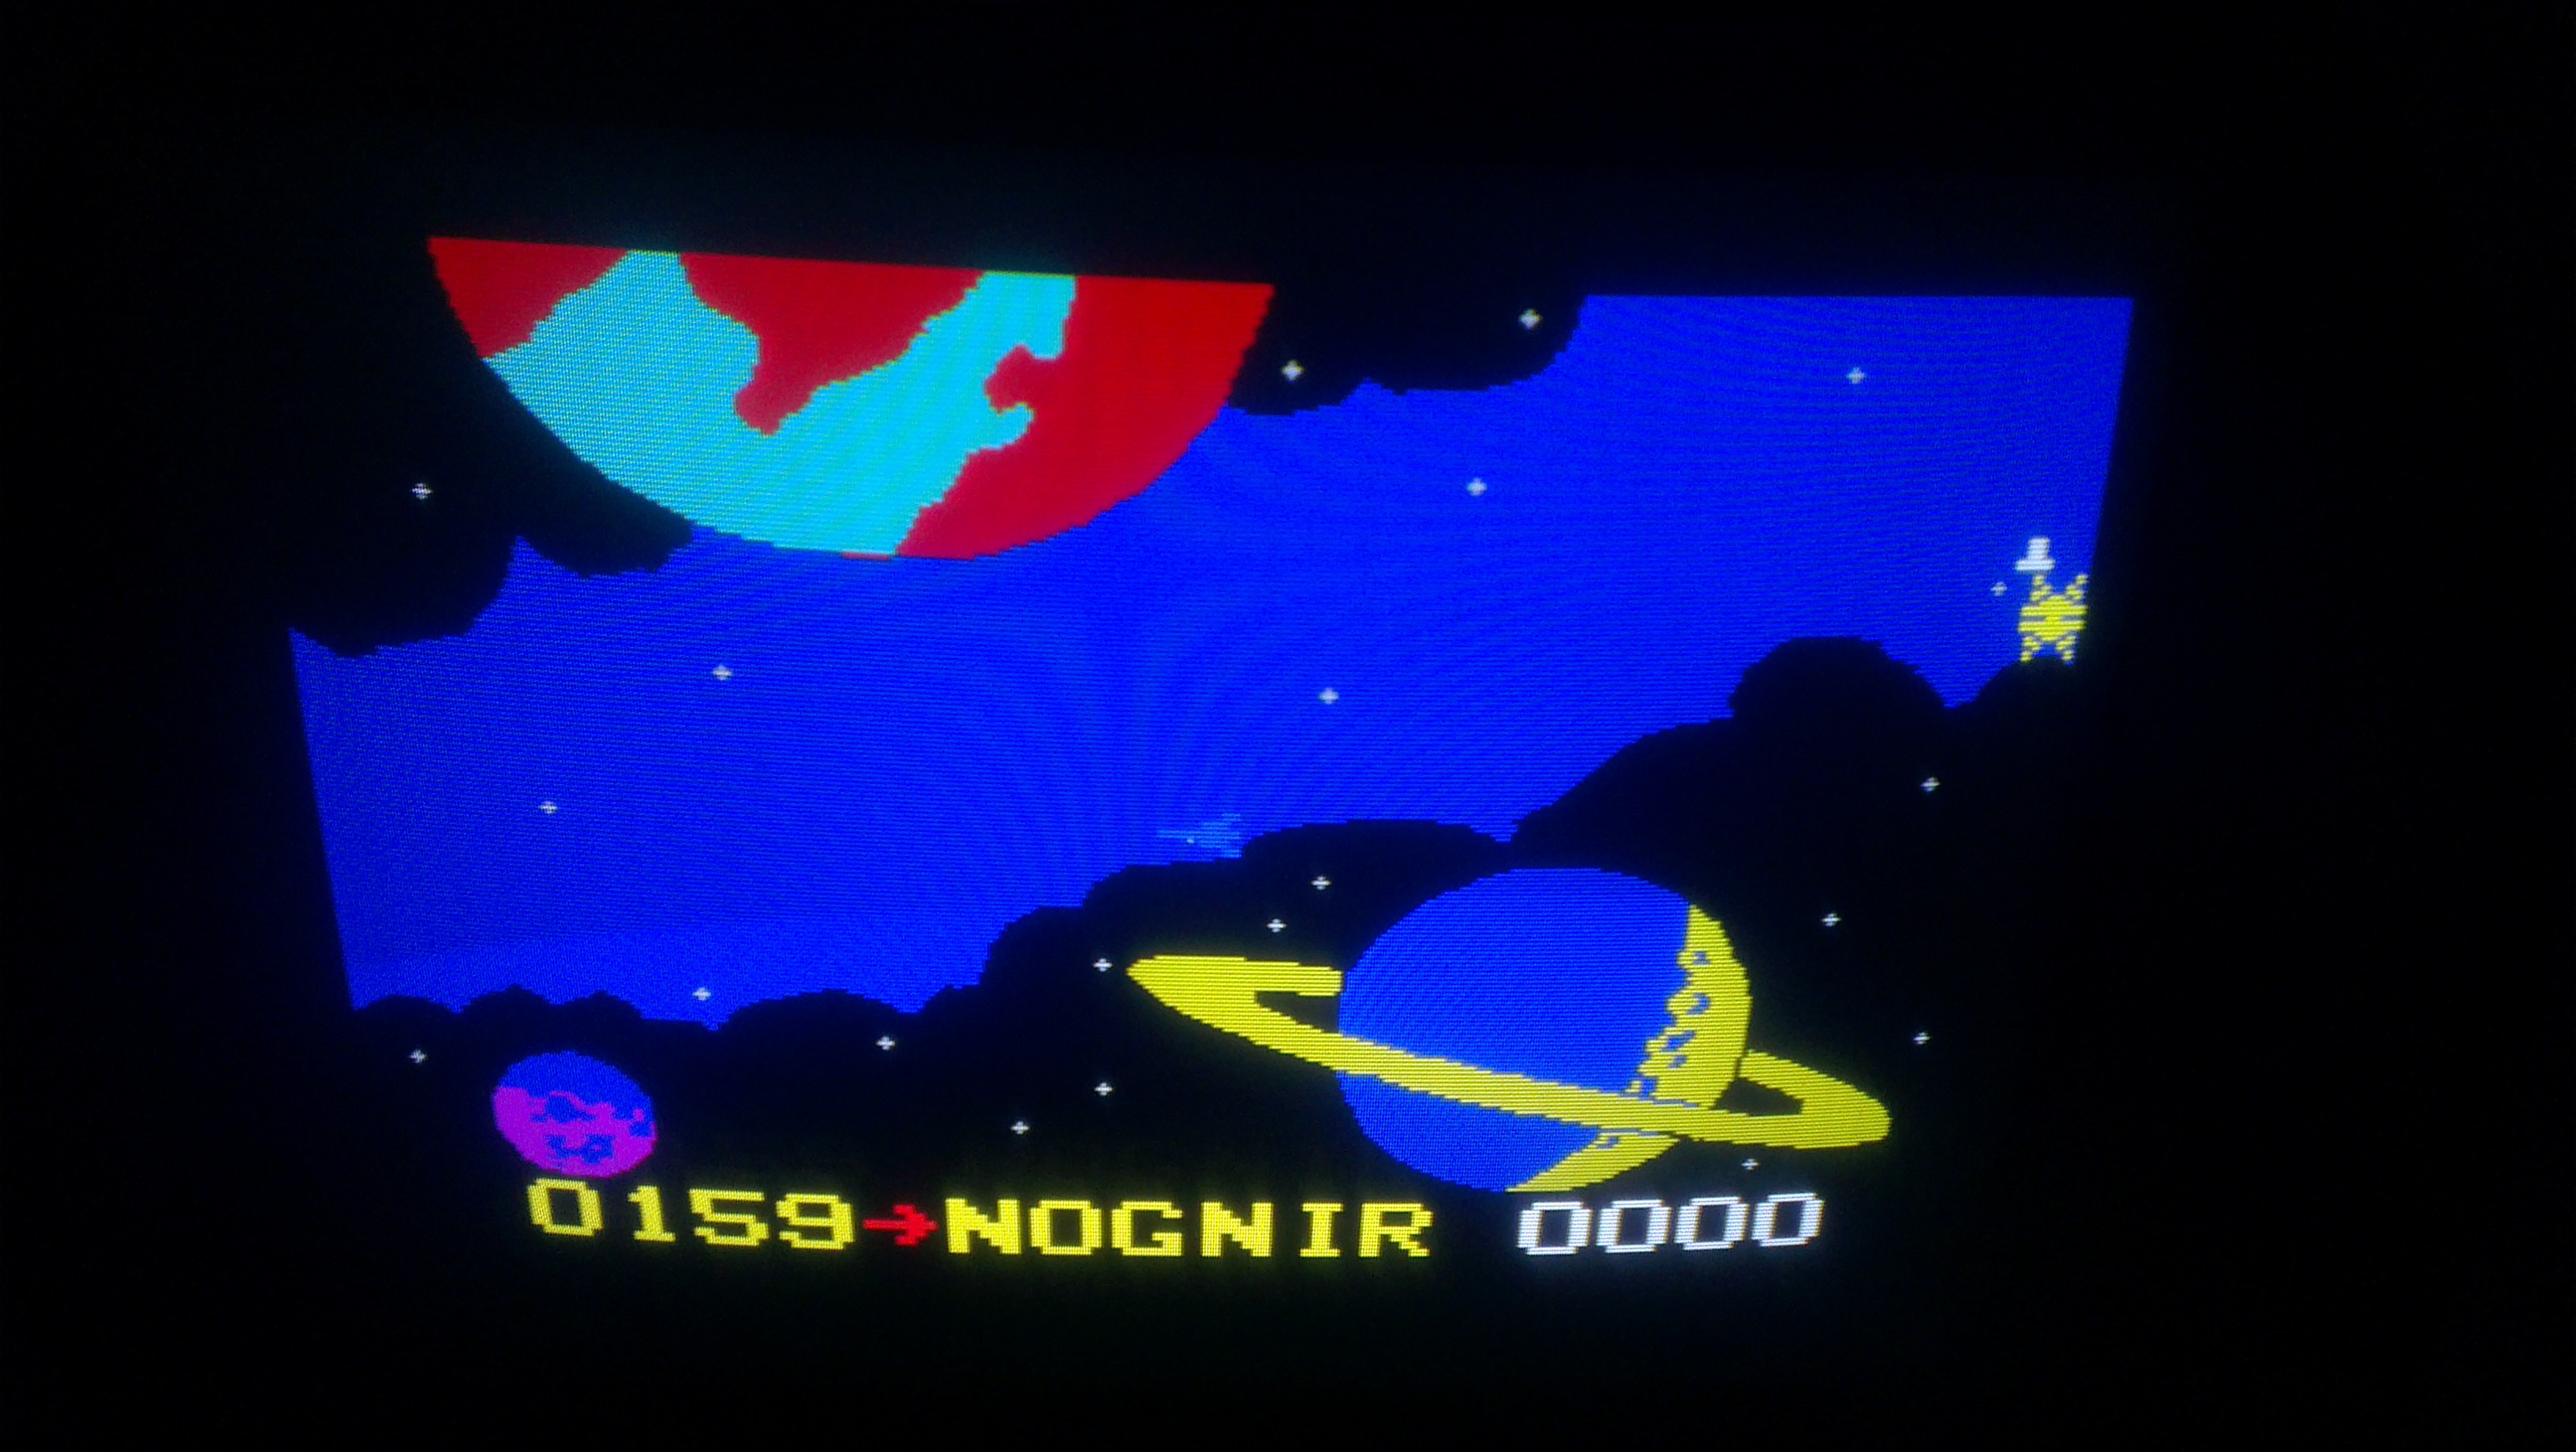 Nognir: Freedom Fighters (Odyssey 2 / Videopac) 159 points on 2014-01-29 15:31:28